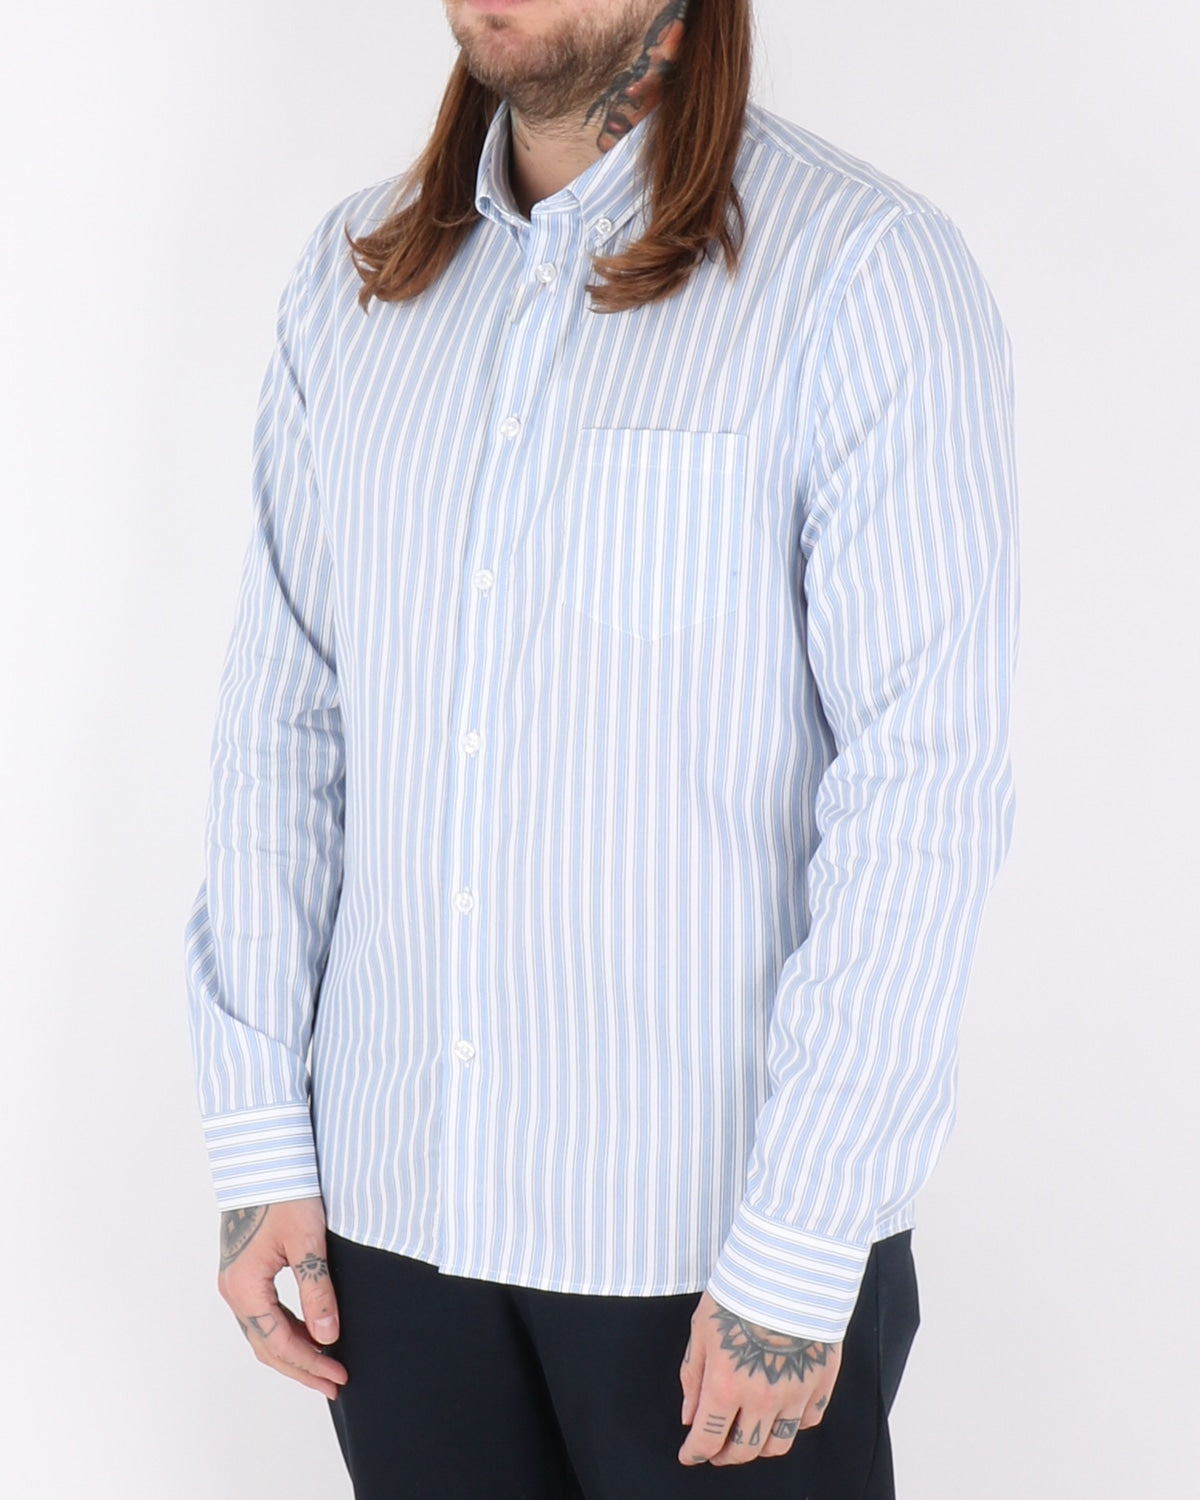 legends_lagos shirt_light blue striped_2_3